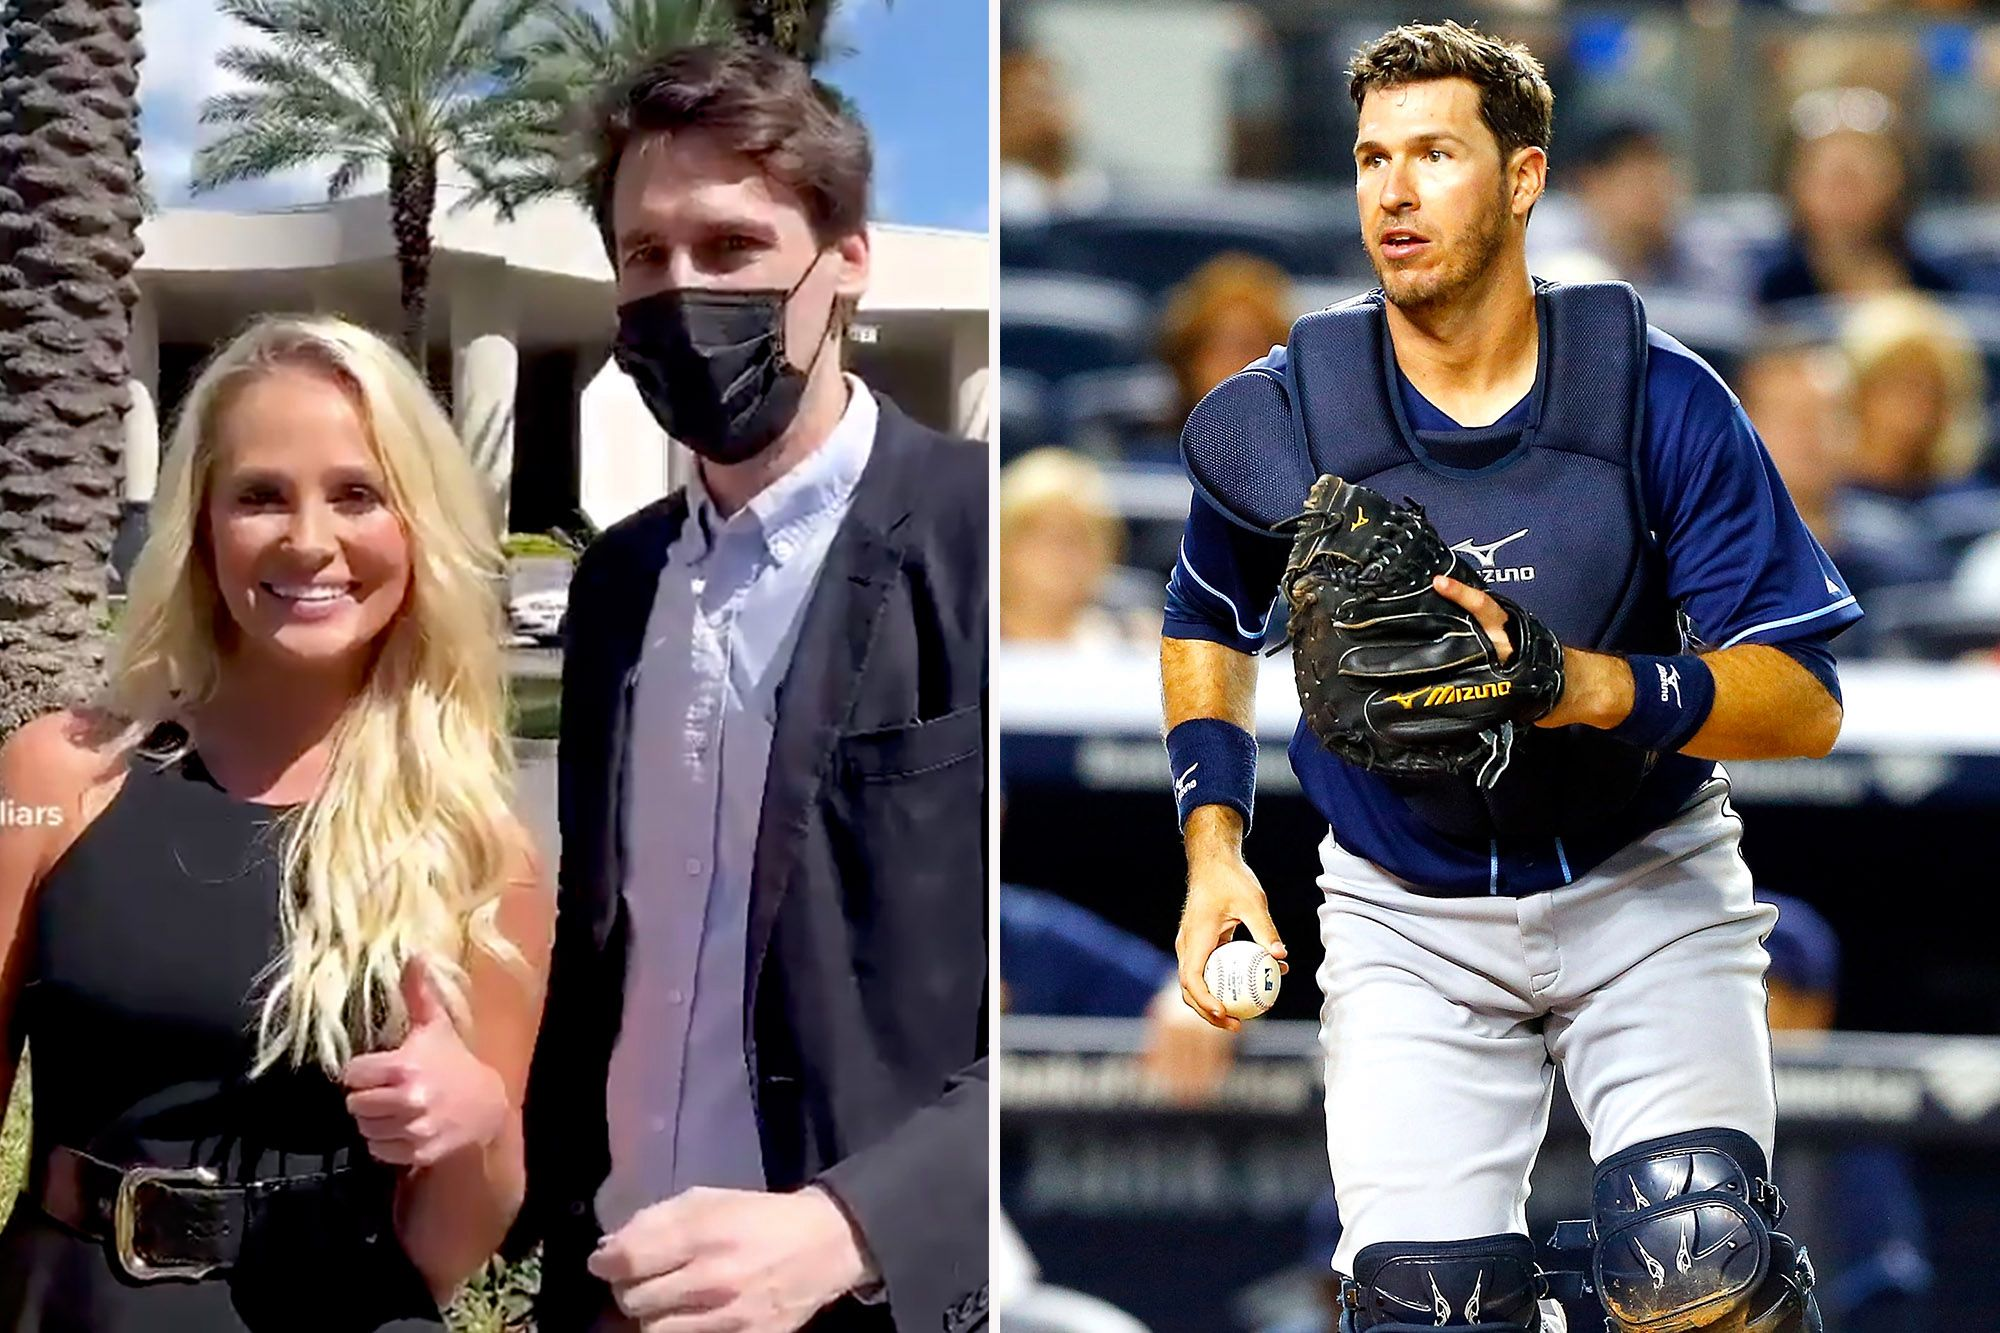 Lahren and Arencibia